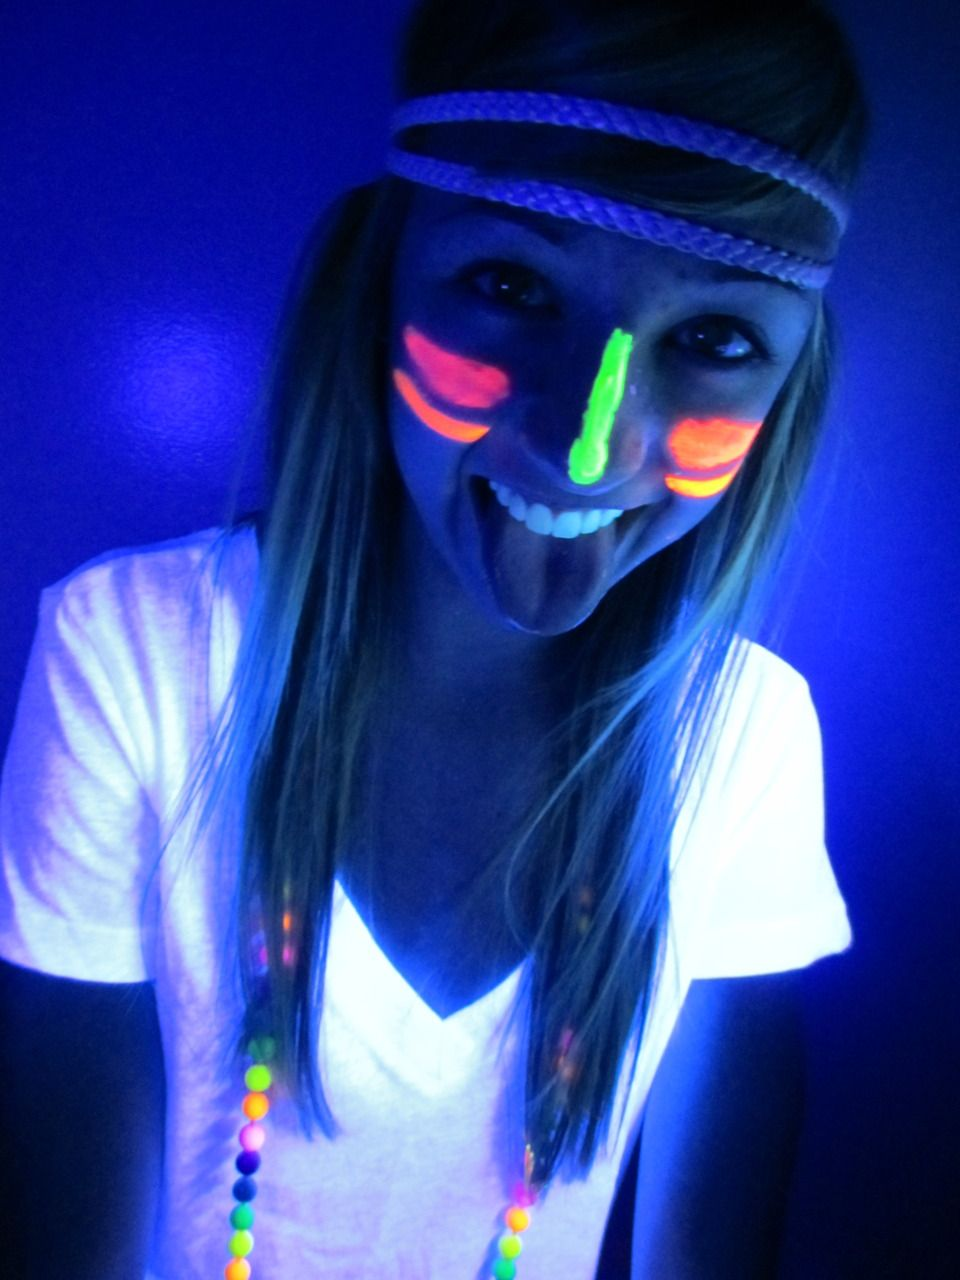 Glow In The Dark Paint Partyideas Glow Glow In Dark Party